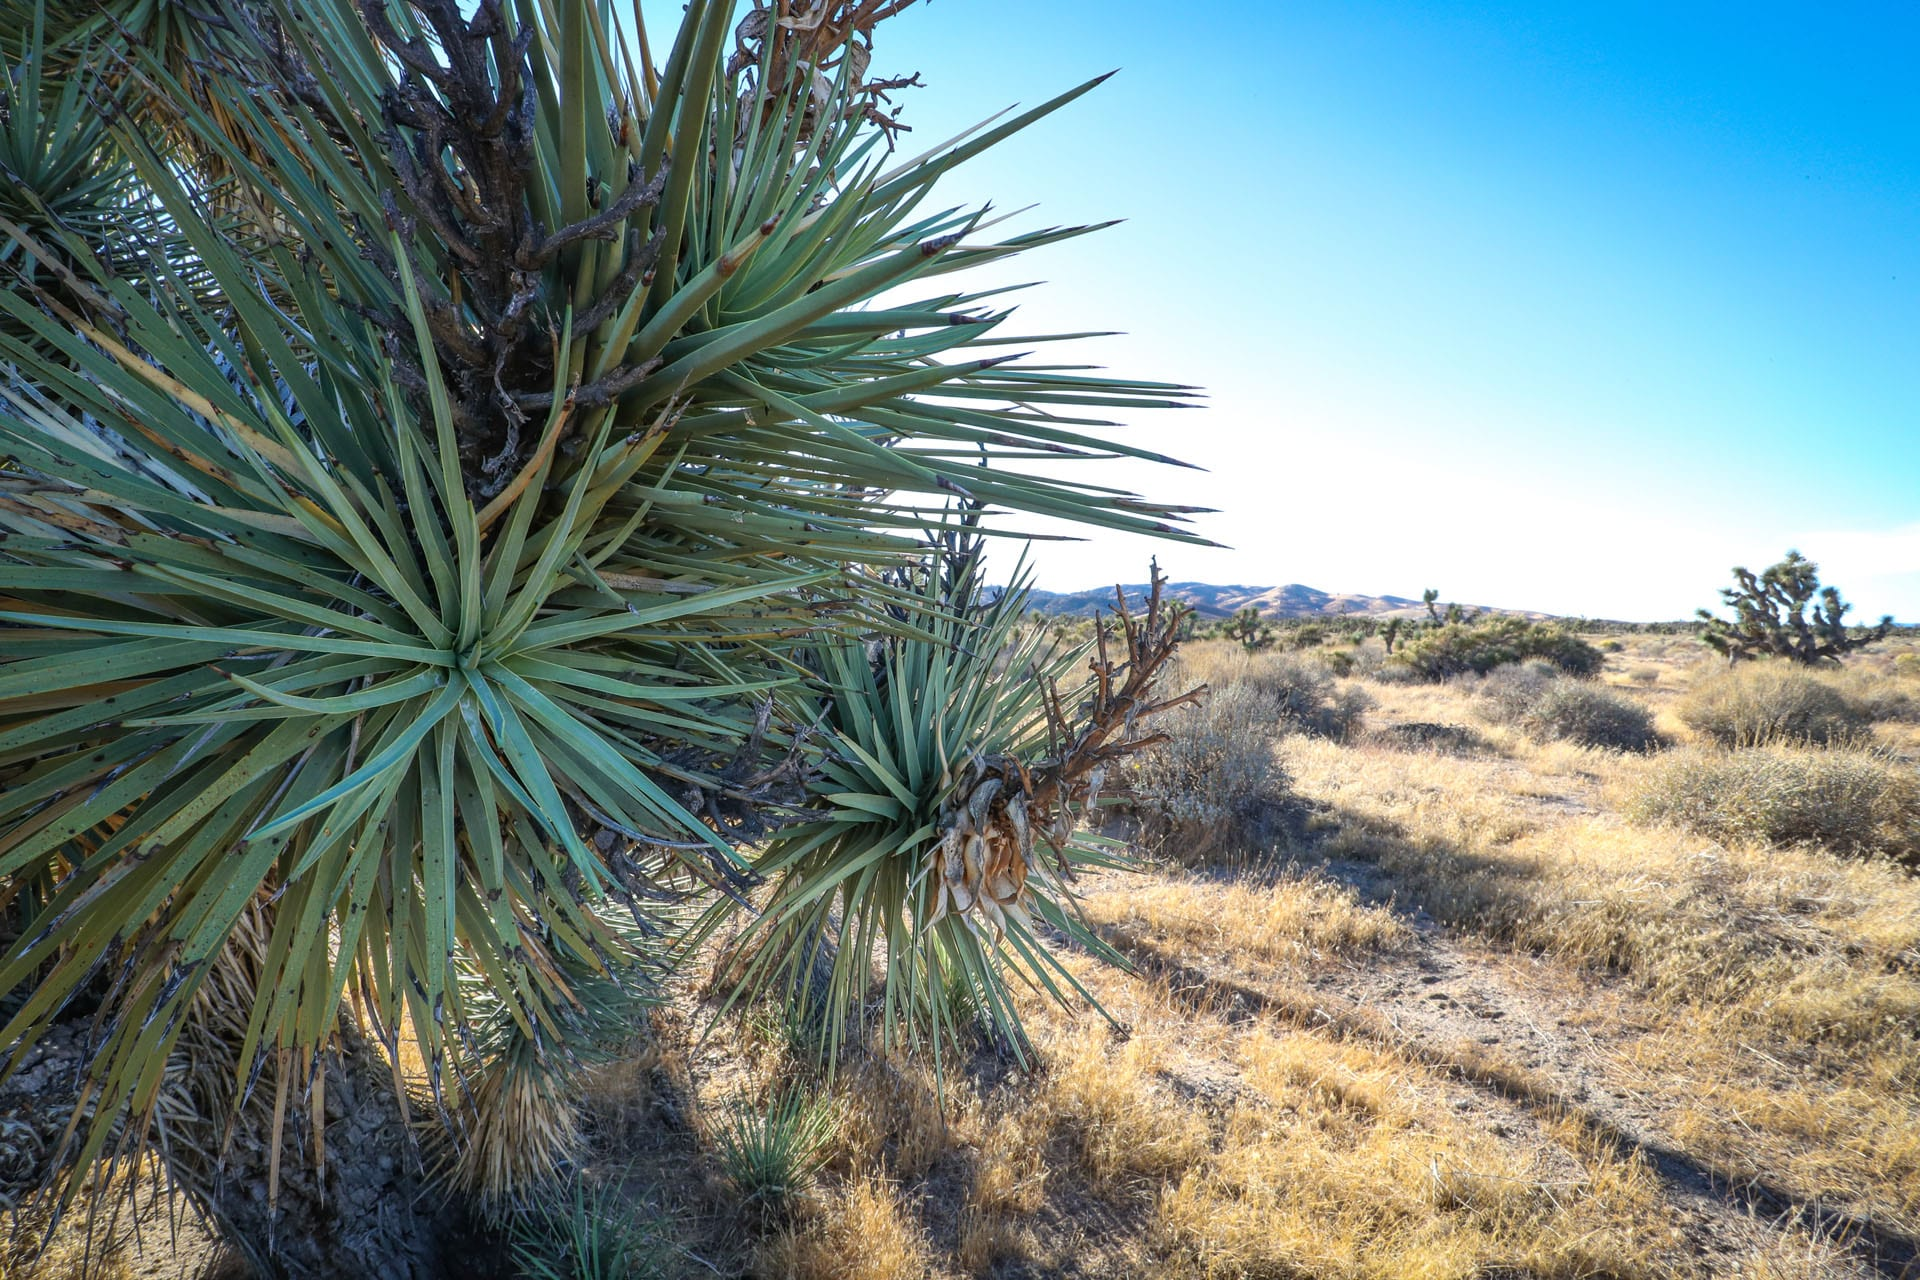 Close-up of Joshua tree needles, desert plain in the background